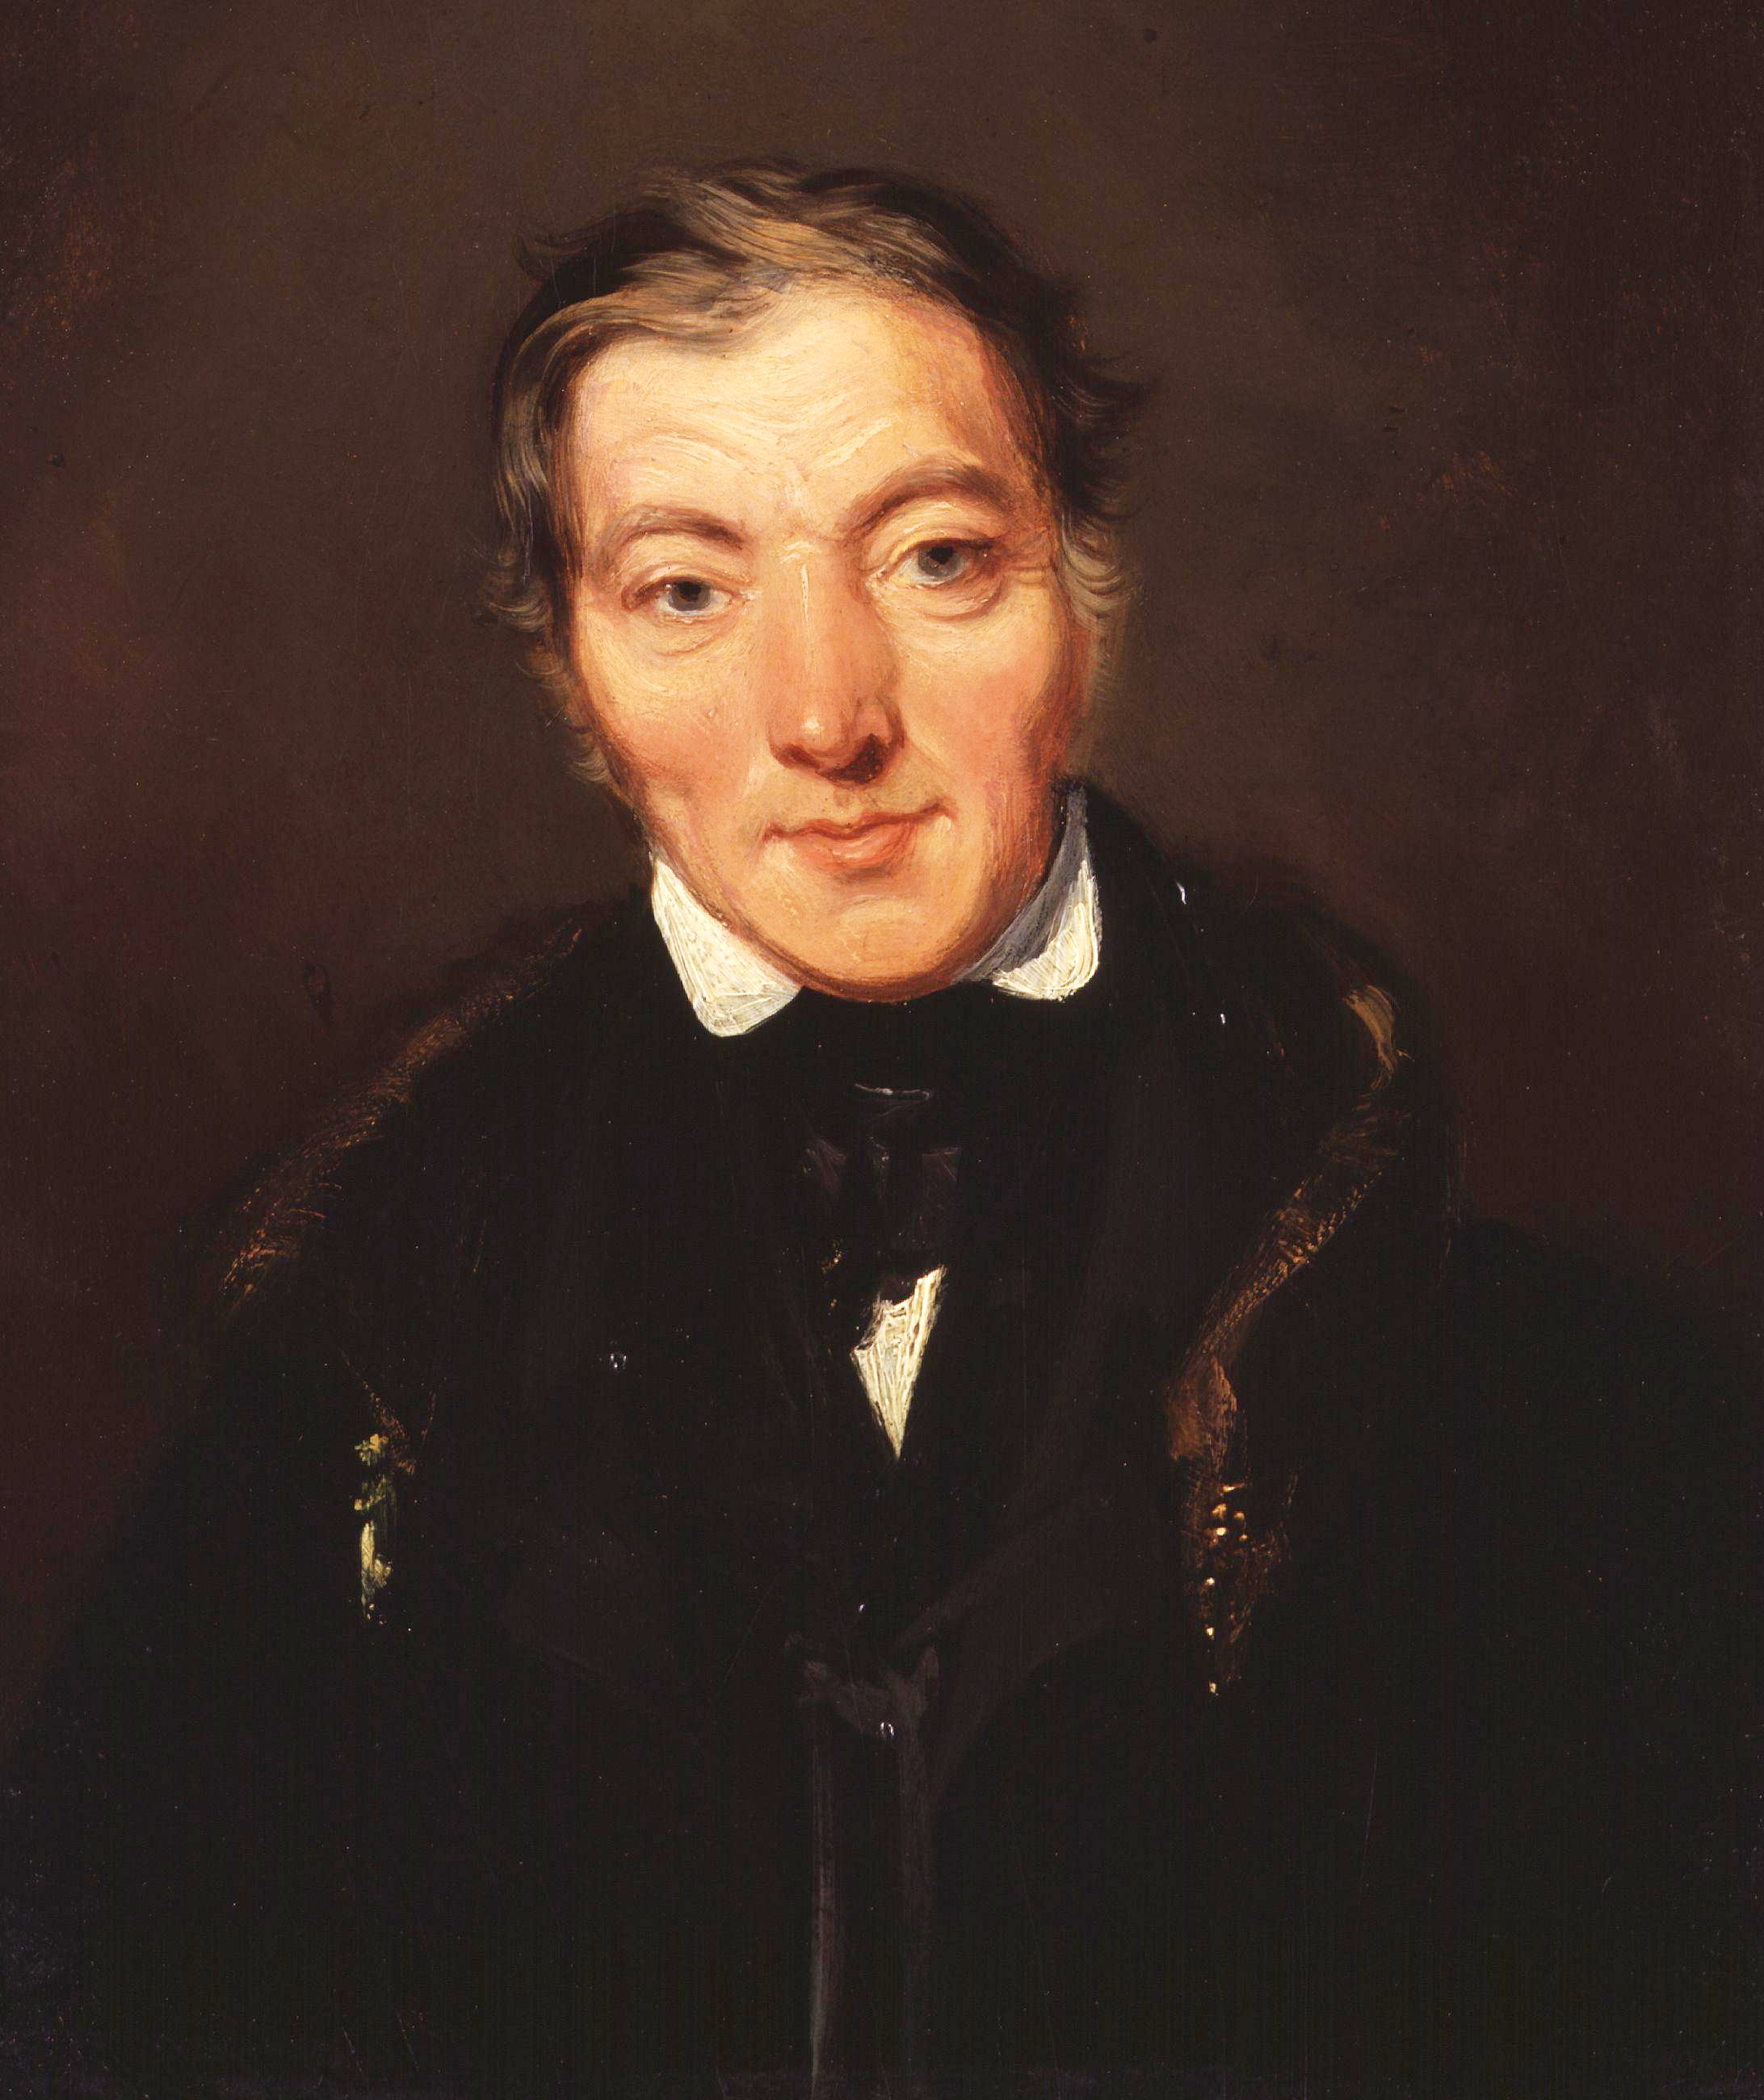 Robert Marcus Owen, aged about 50